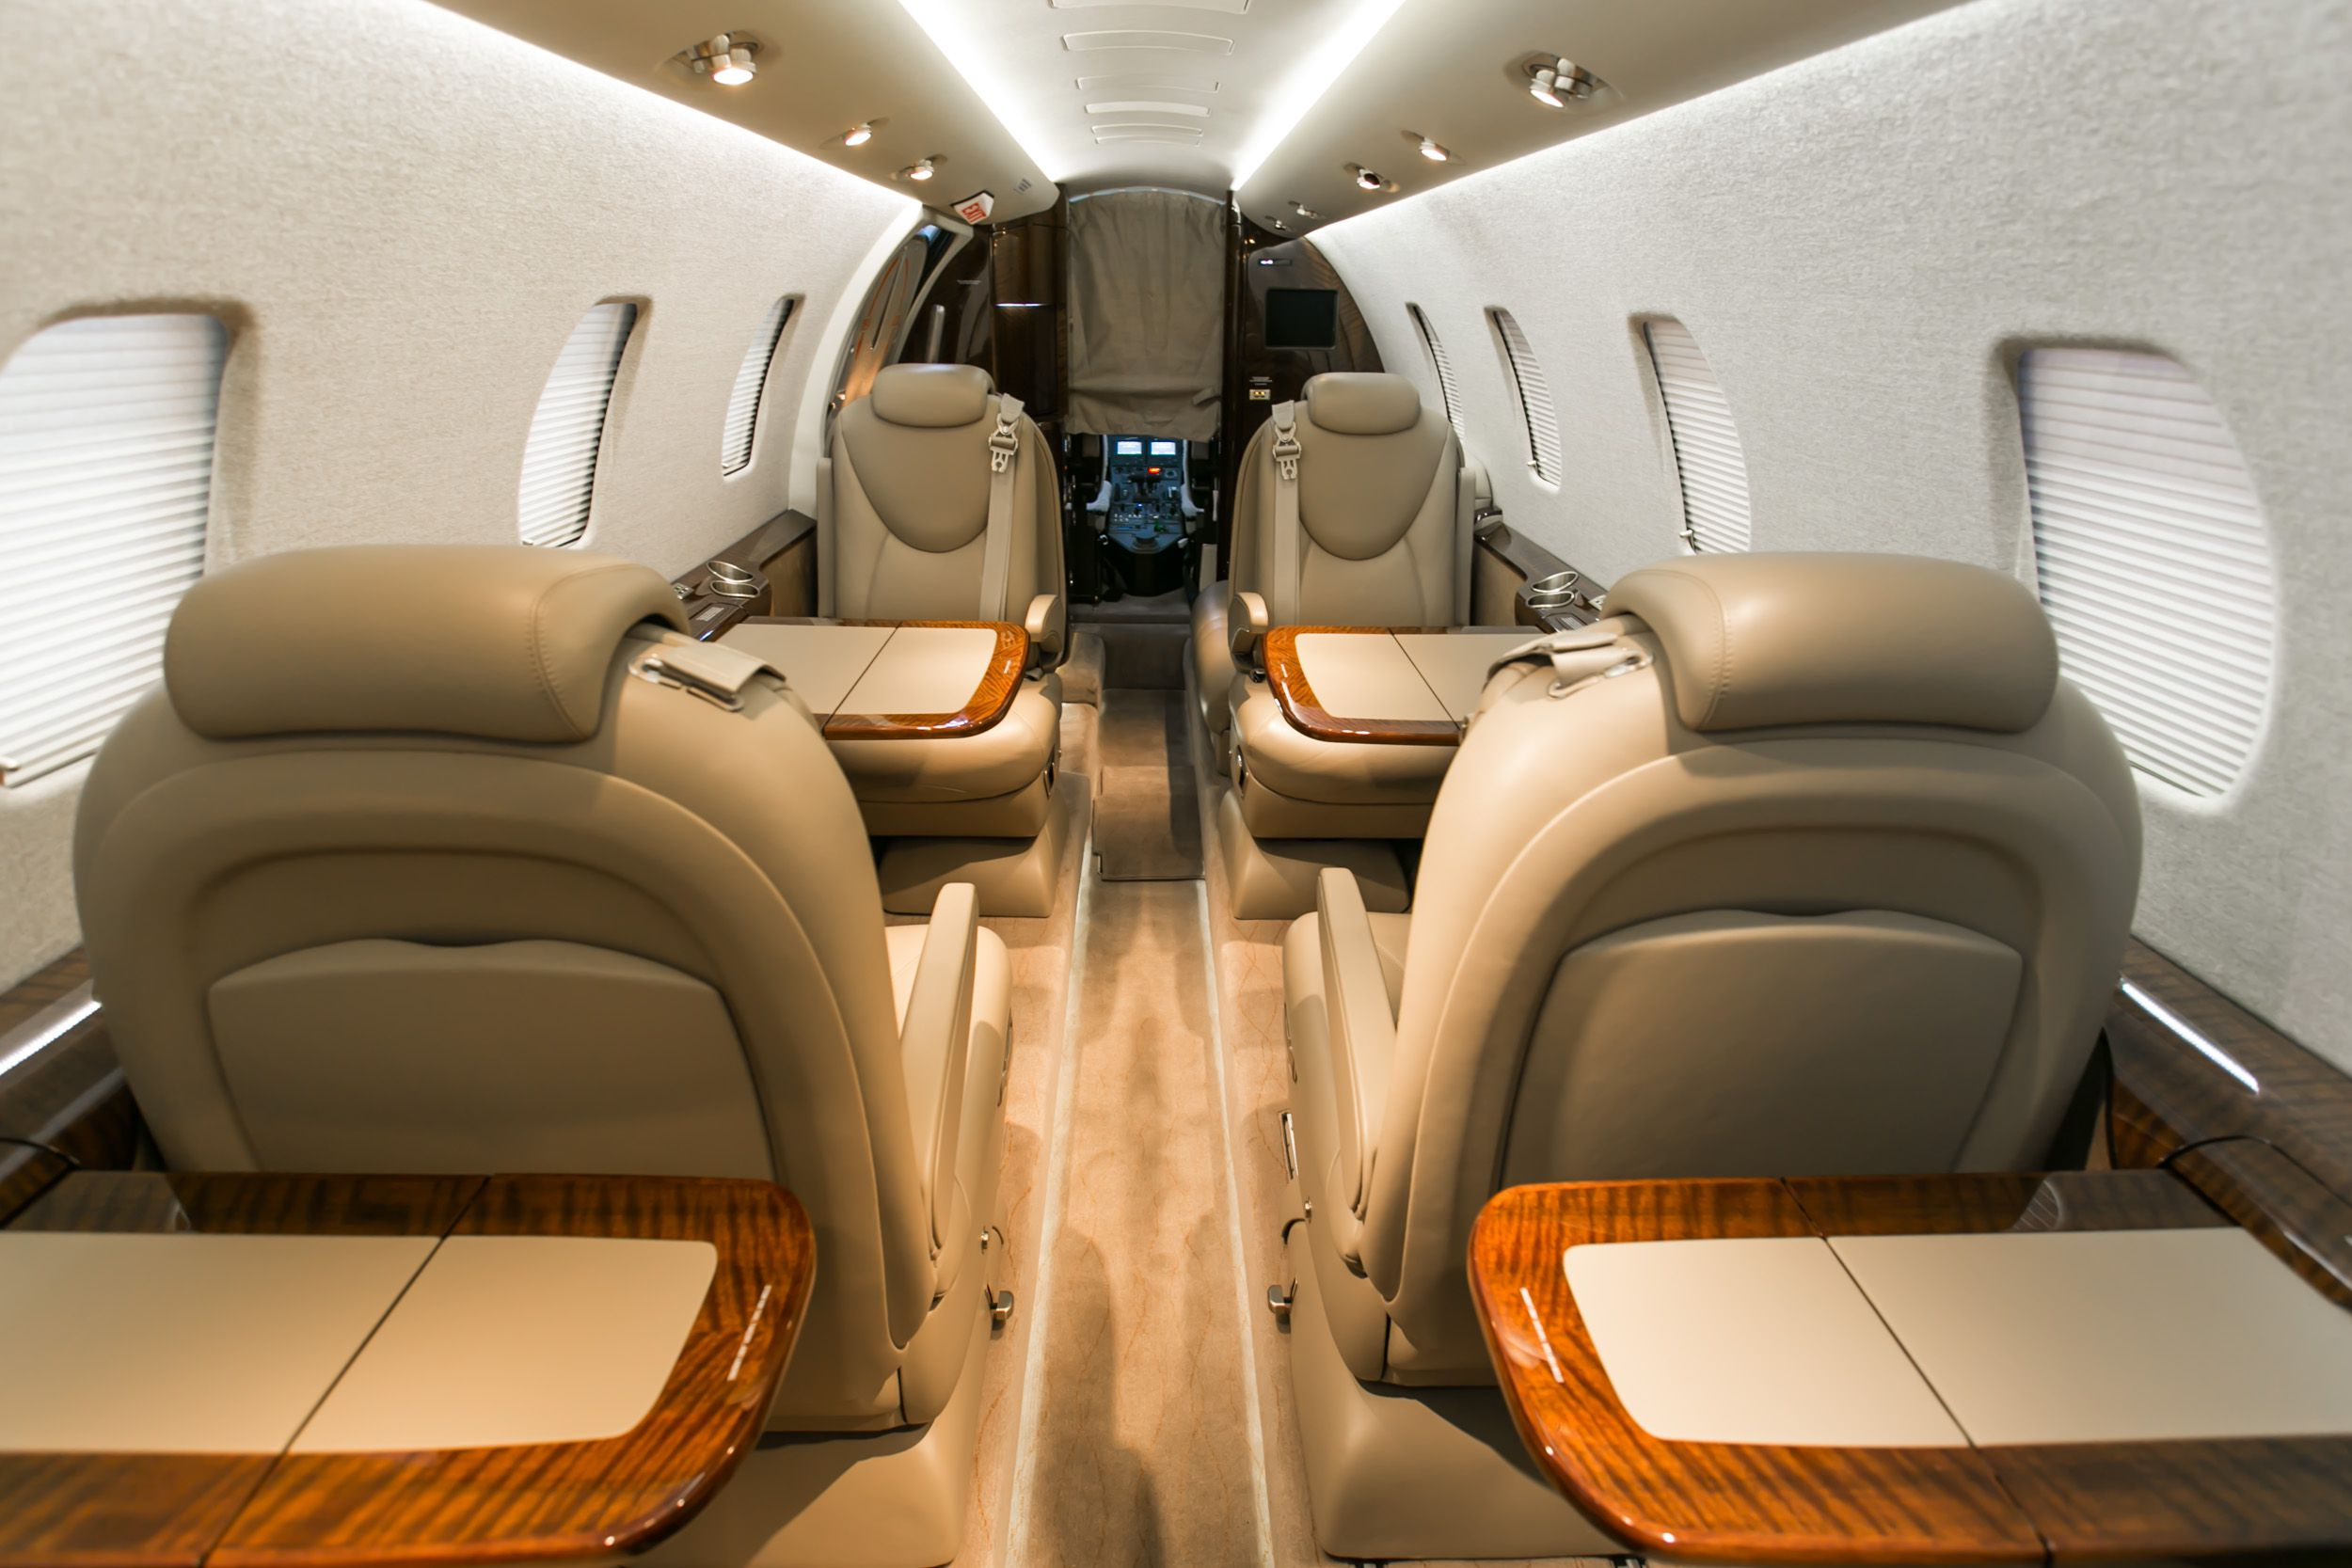 citation xls personal business jet charter flights westhampton beach suffolk county. Black Bedroom Furniture Sets. Home Design Ideas